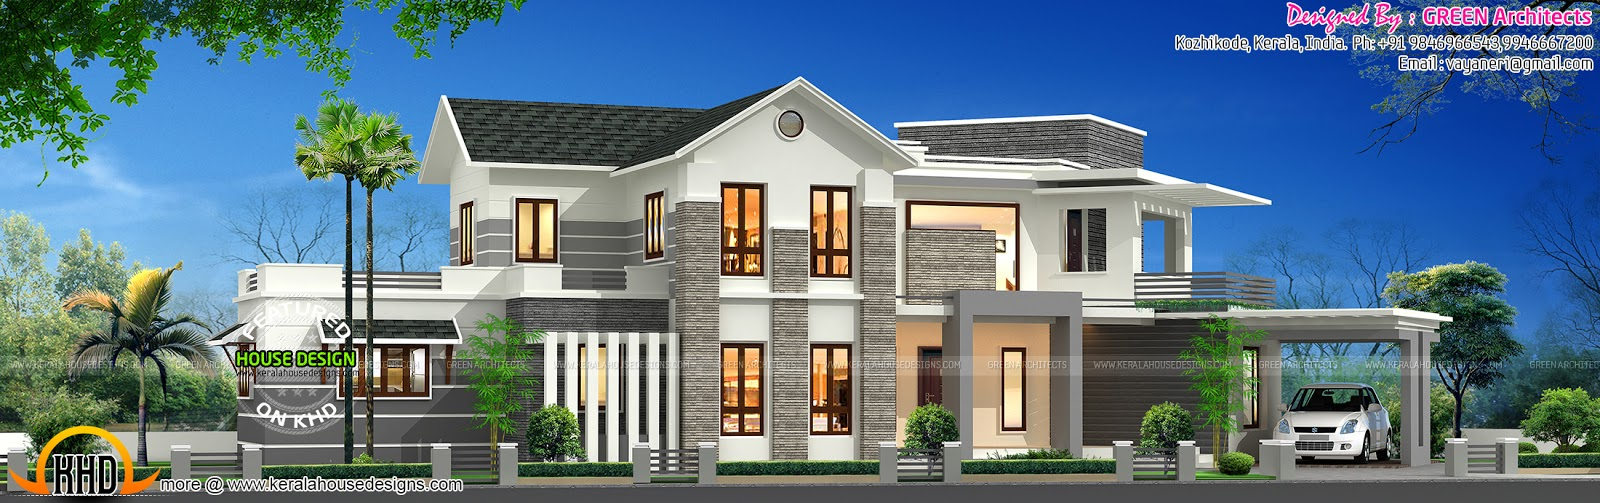 5 bhk house in 2750 sq ft kerala home design and floor plans for 5 bhk house